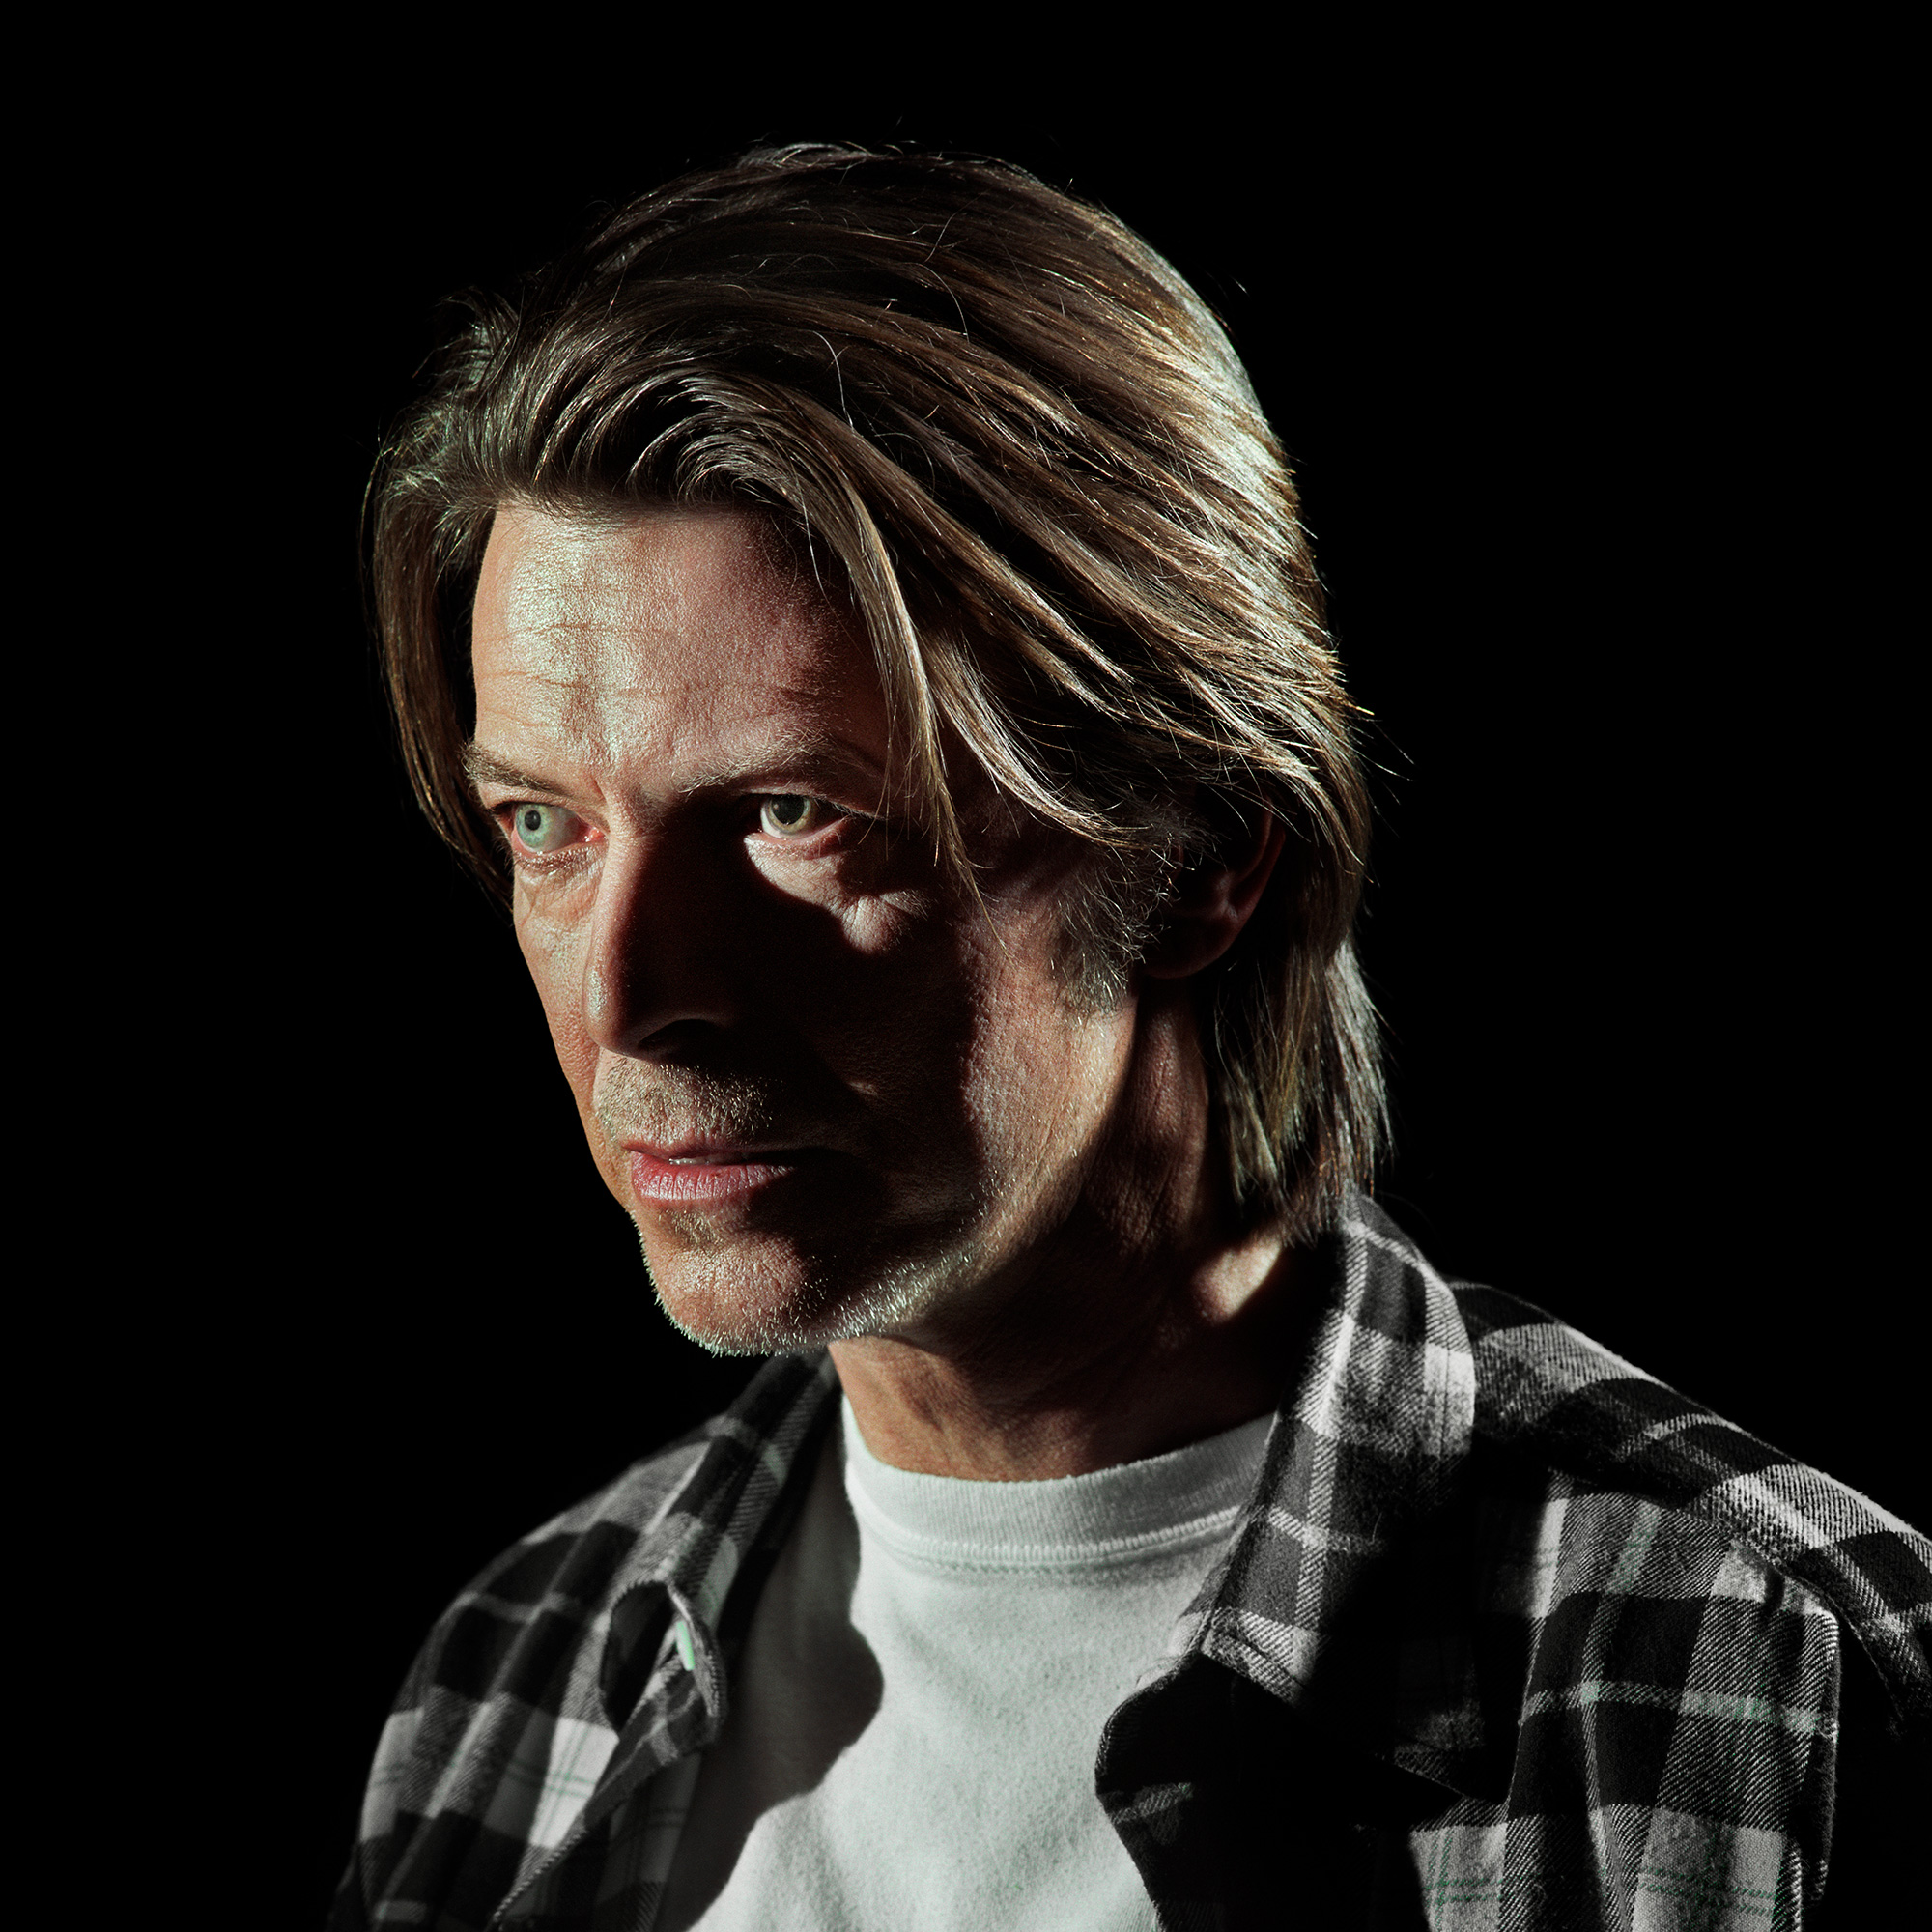 Photograph 2016 Chris Floyd David Bowie David Bowie - Studio;Male;Portrait;Music;Musician;Band